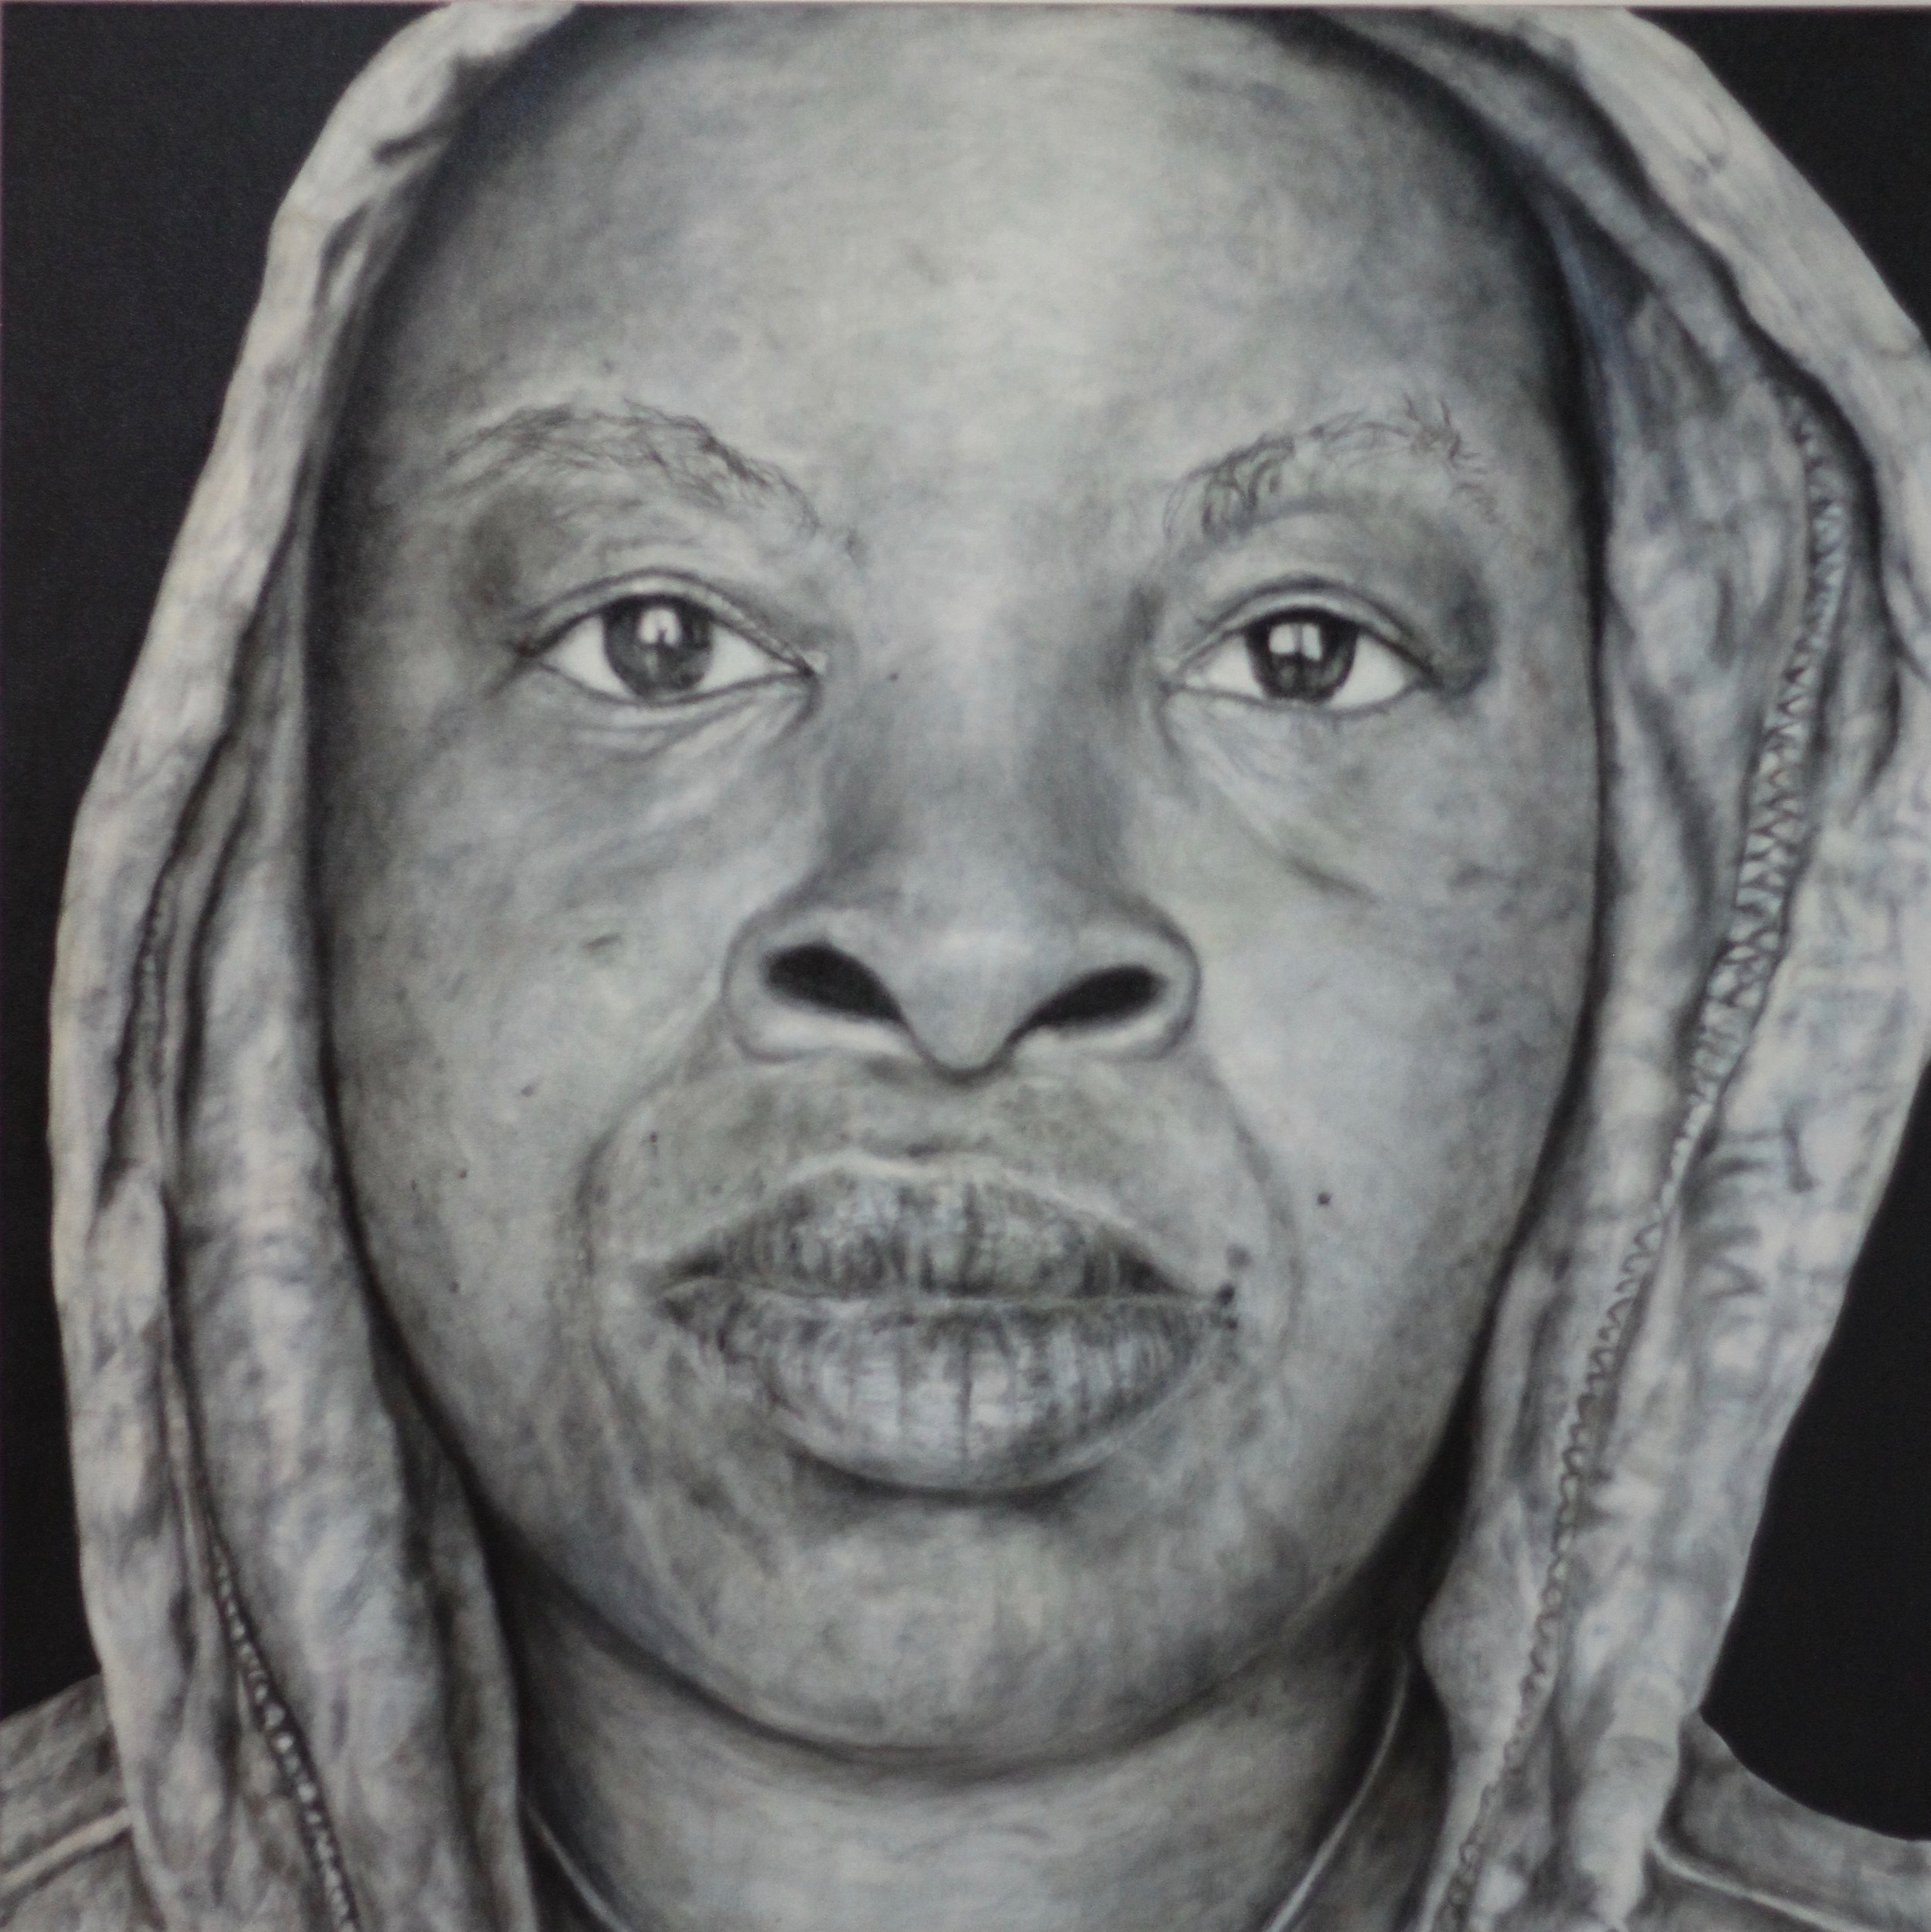 """In The Hood - Portraits of African American professionals wearing a Hoodie"", oil on canvas, 48""x48"", 2014."